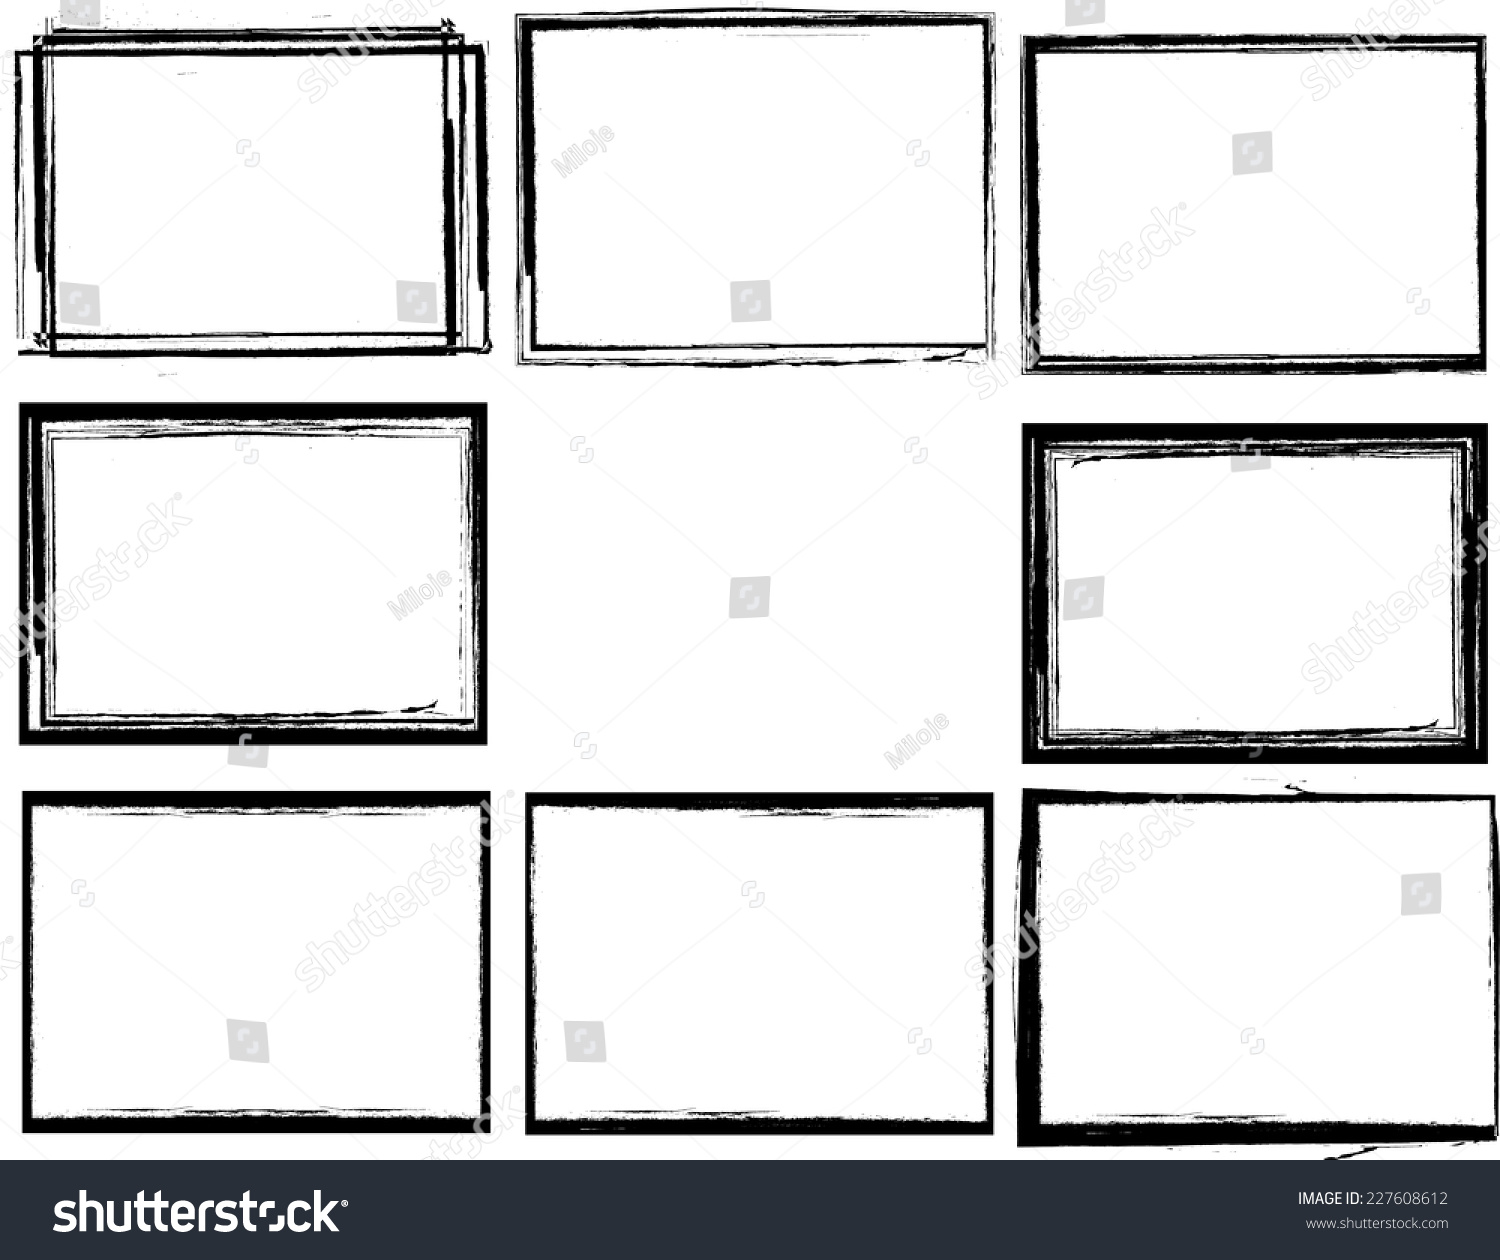 set of grunge black and white frames textured rectangles for image